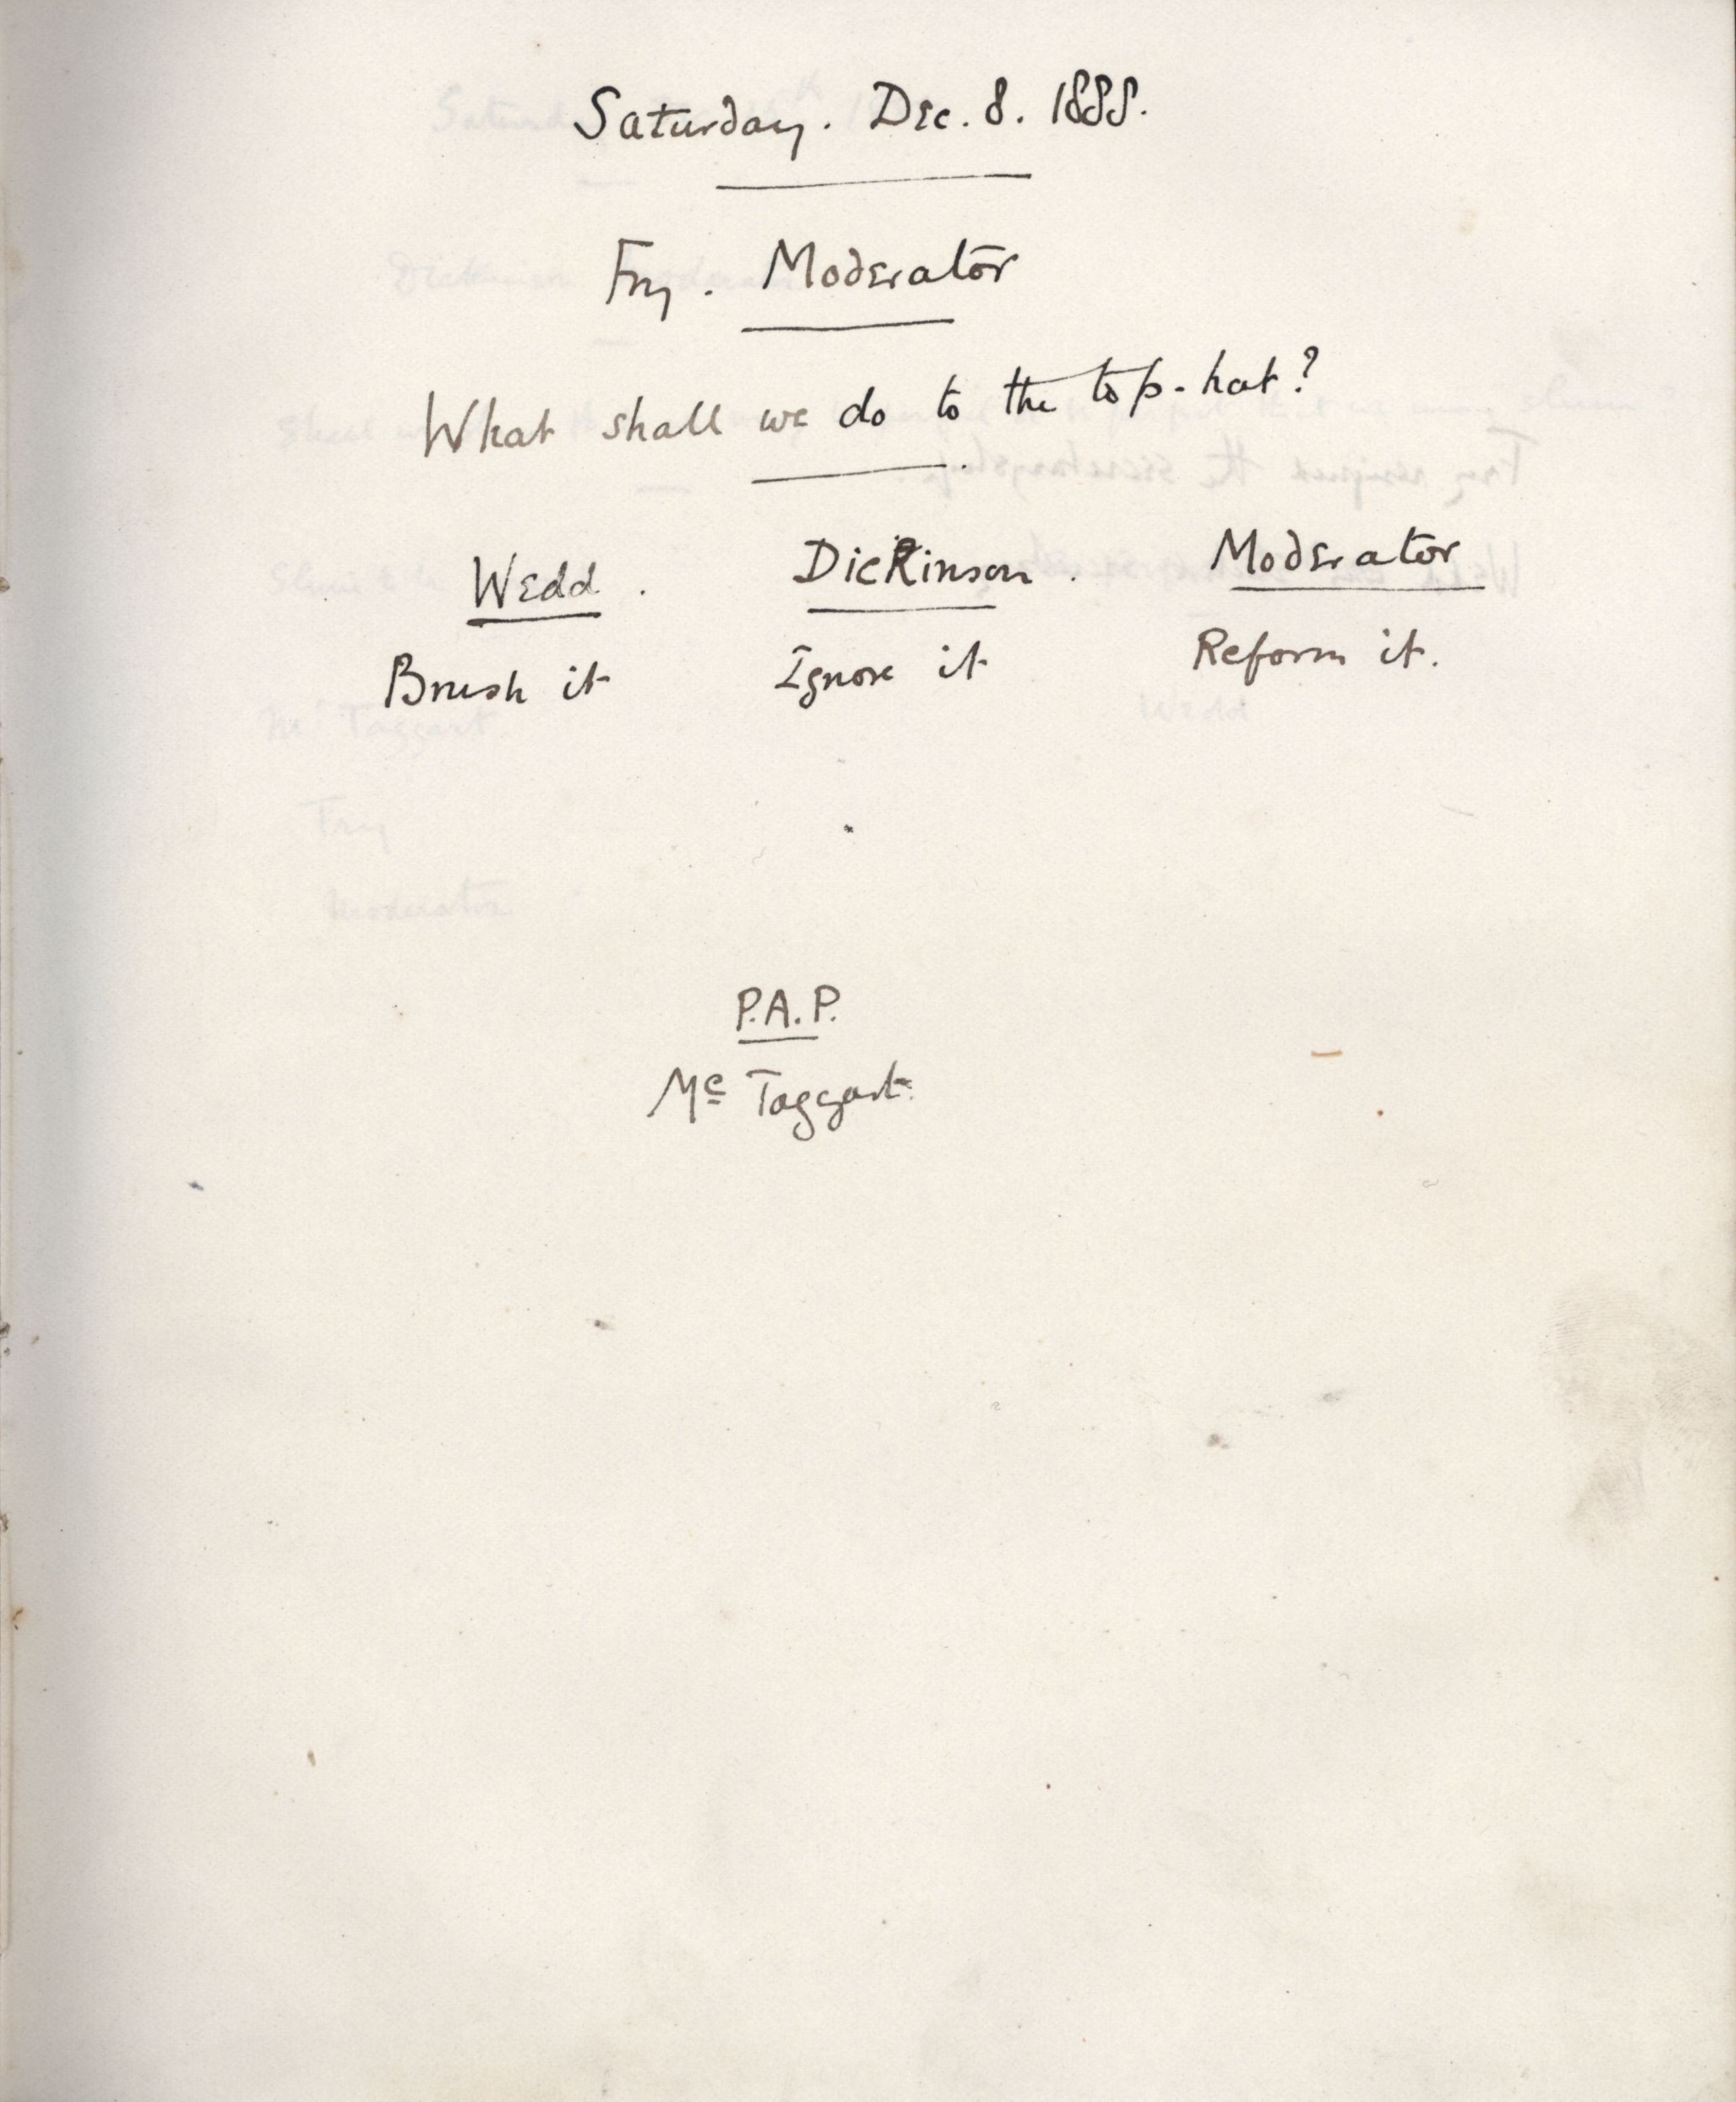 Minutes of a meeting in which Fry asked 'What should we do to the top-hat?' [KCAS/39/1/11, 8 December 1888]